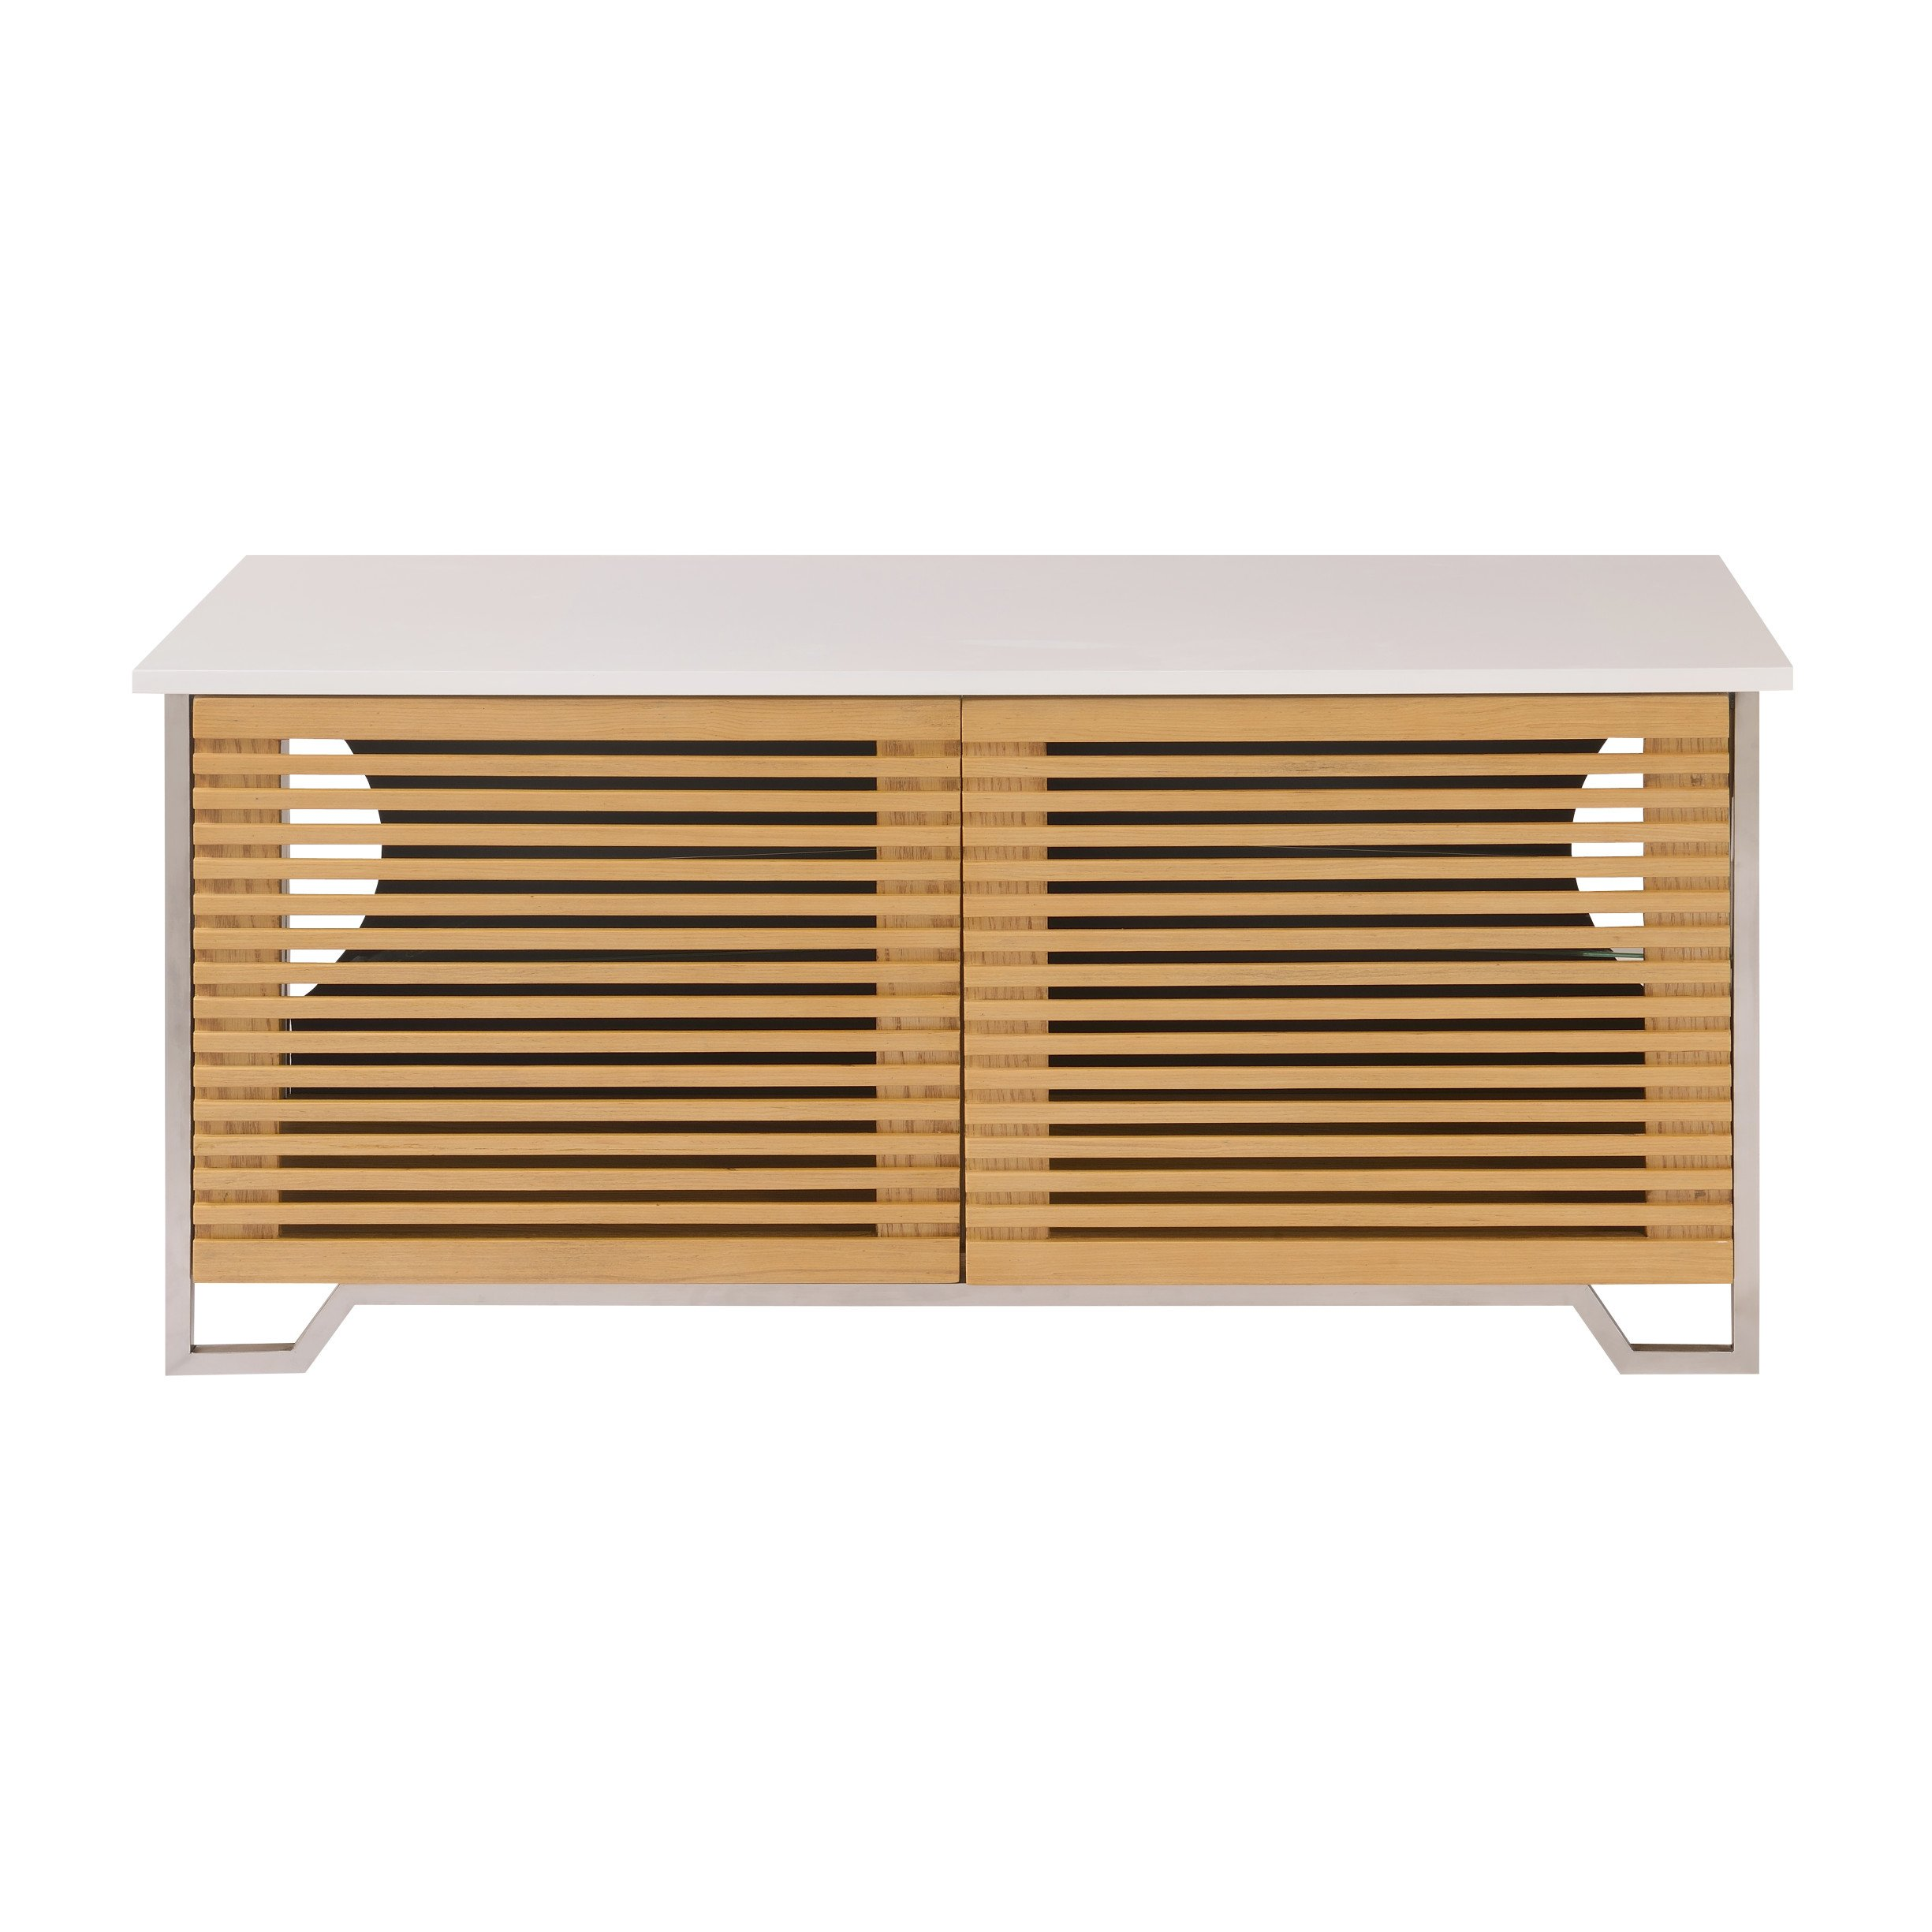 Emerald Home Modern Home White and Beige TV Console with Louvered Doors And Stainless Steel Detailing by Emerald Home Furnishings